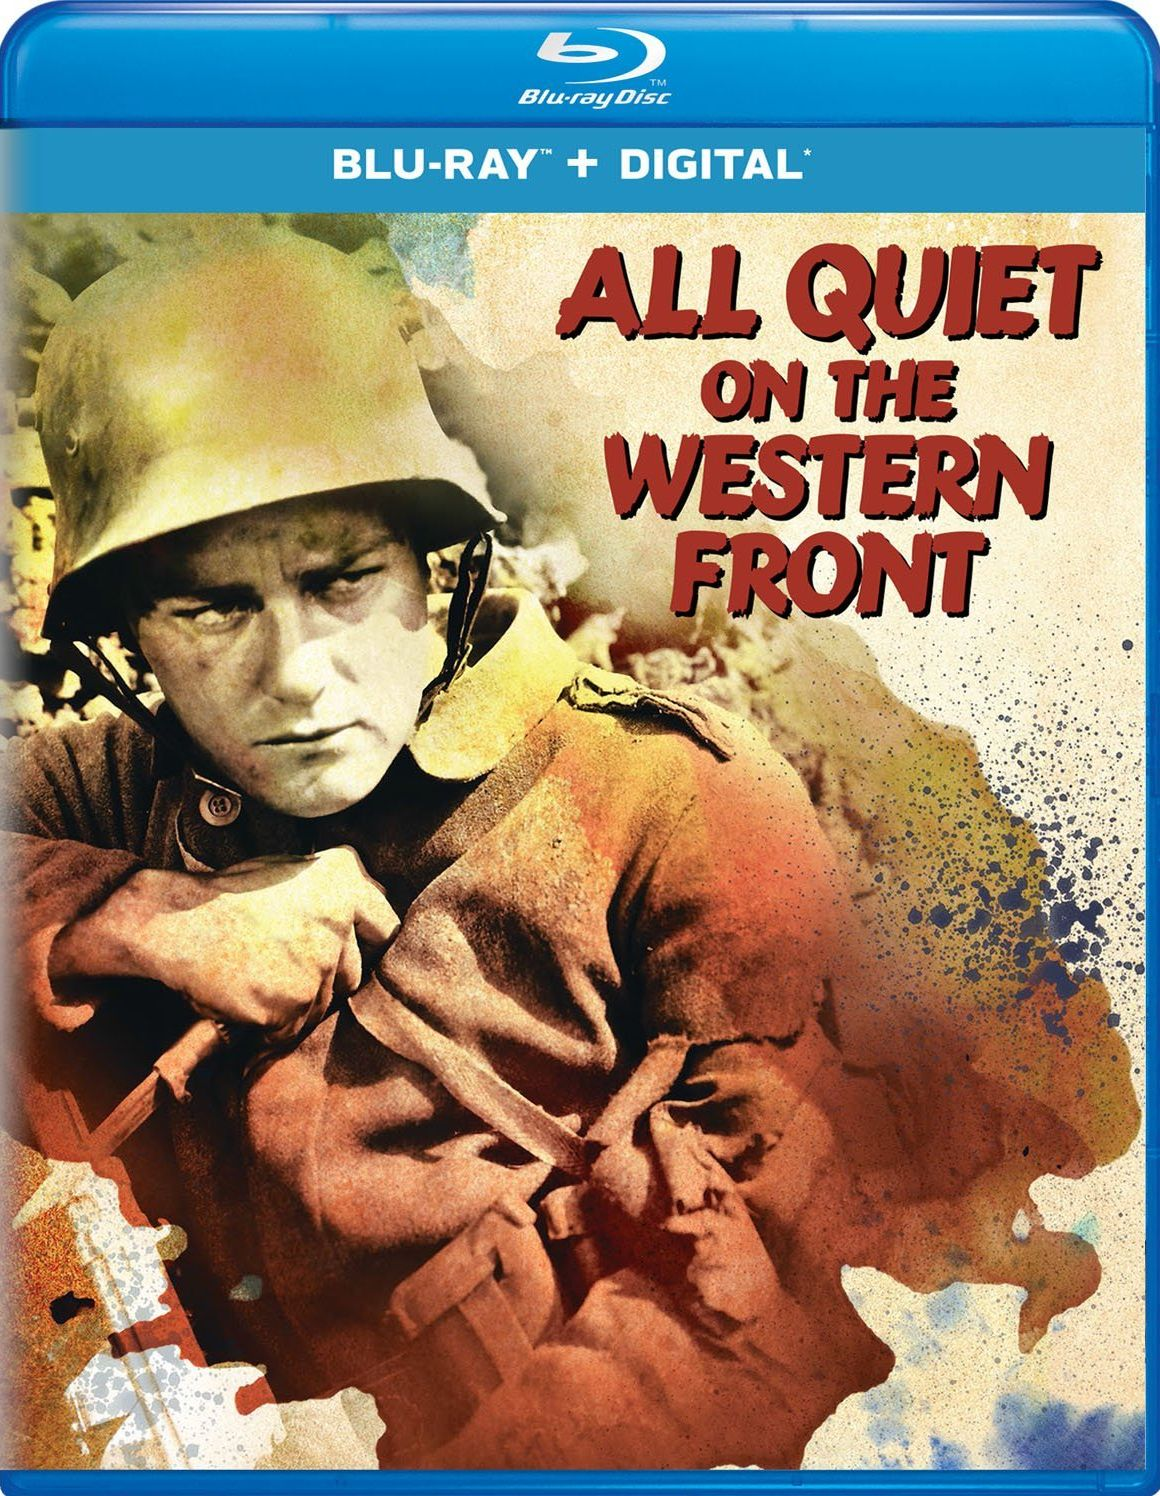 ALL QUIET ON THE WESTERN FRONT BLURAY (UNIVERSAL STUDIOS